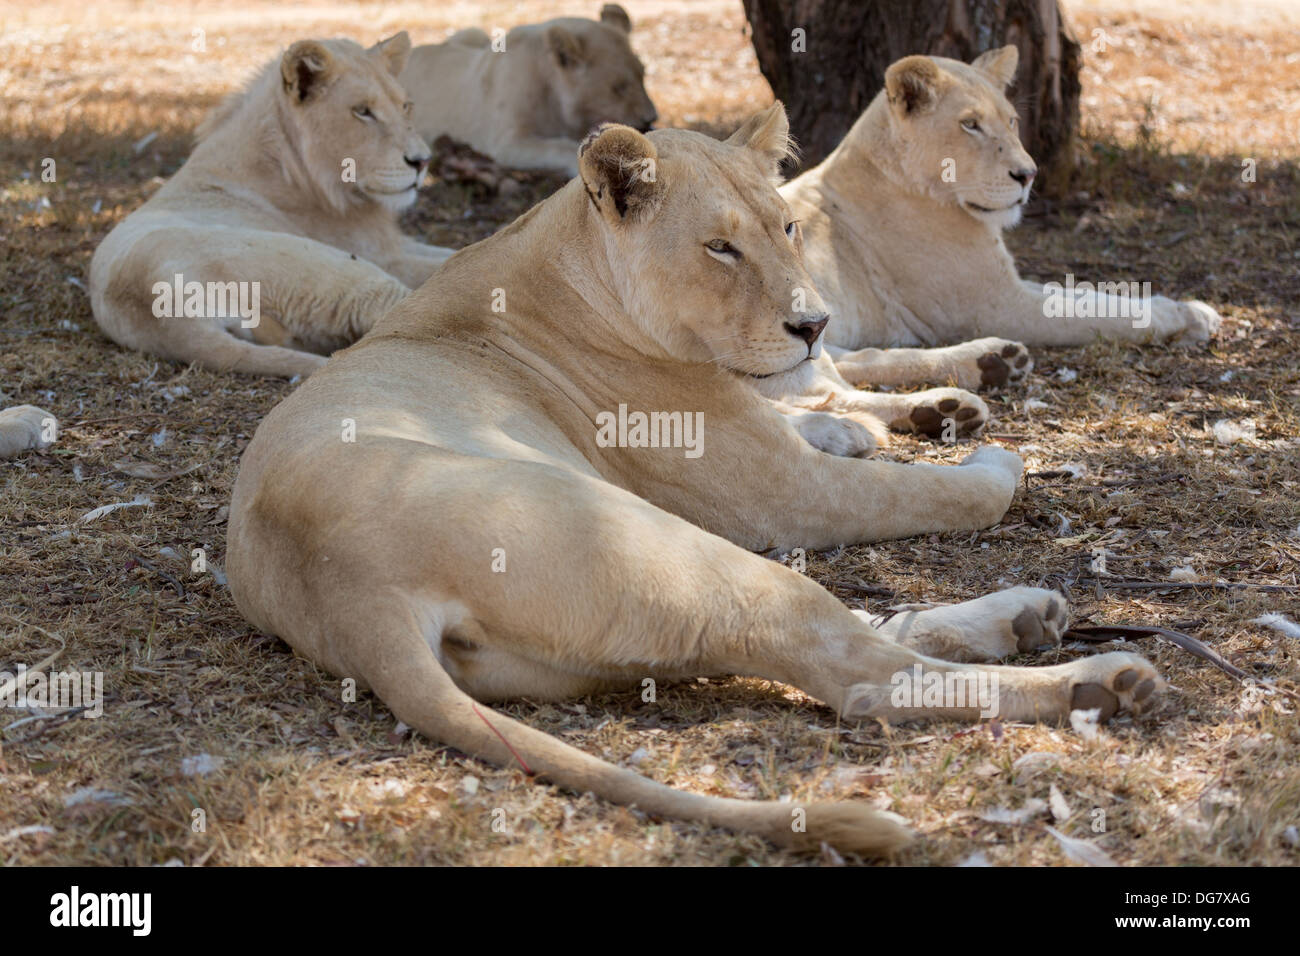 A small family of white lions indigenous to South Africa - Stock Image